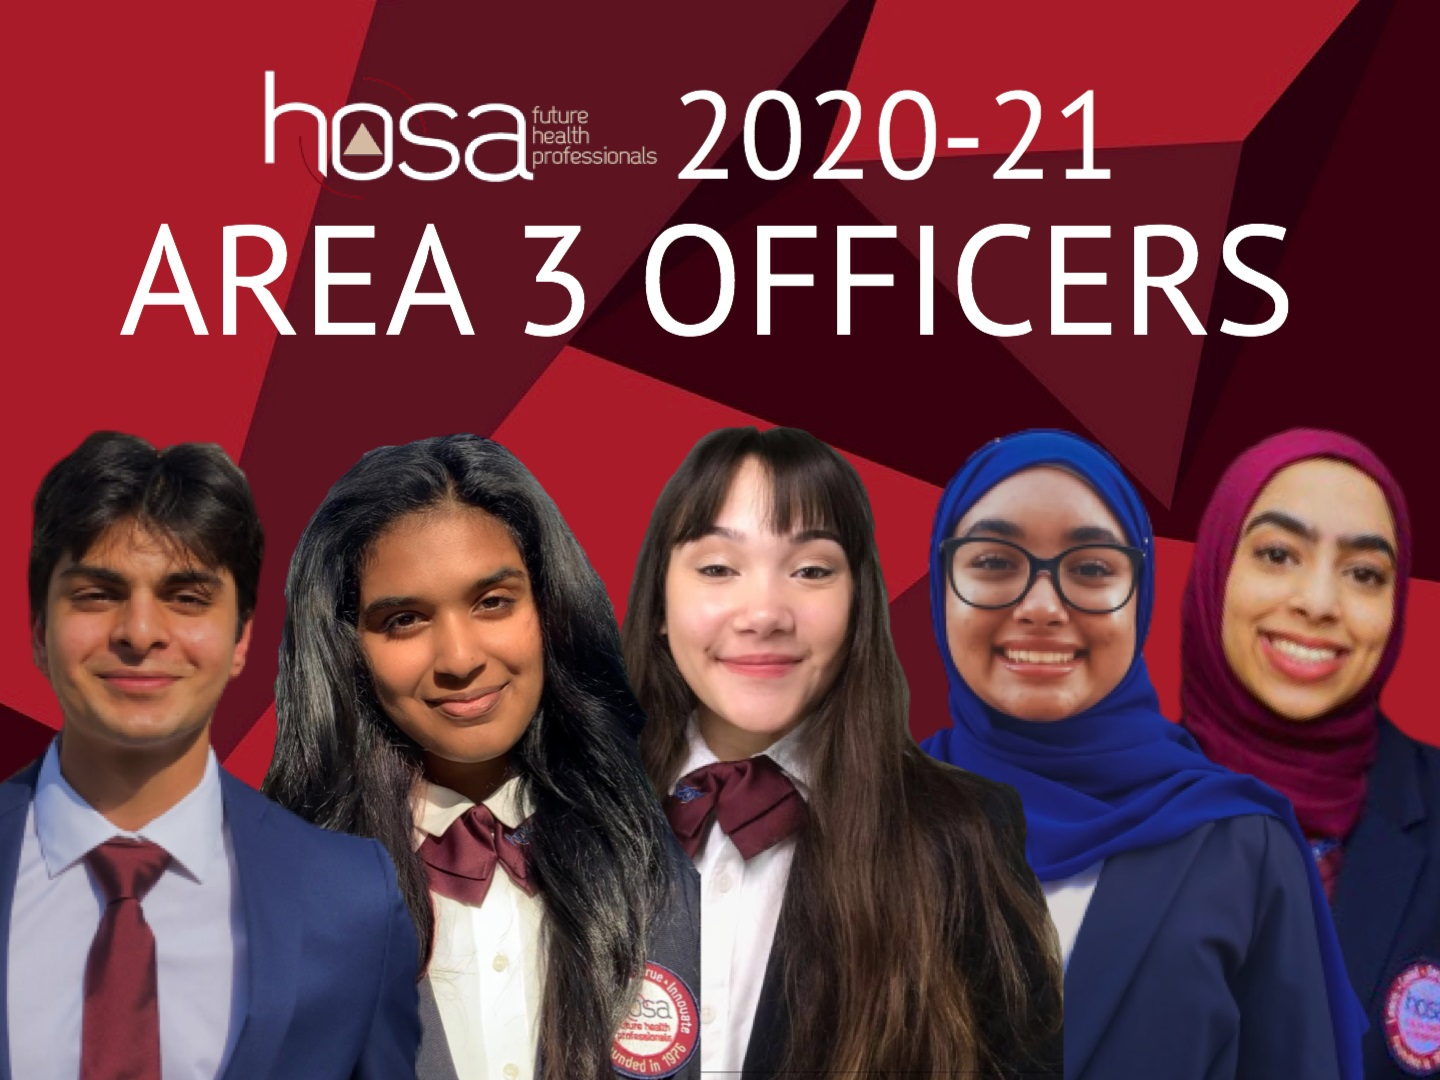 Area 3 Officer Collage JPG